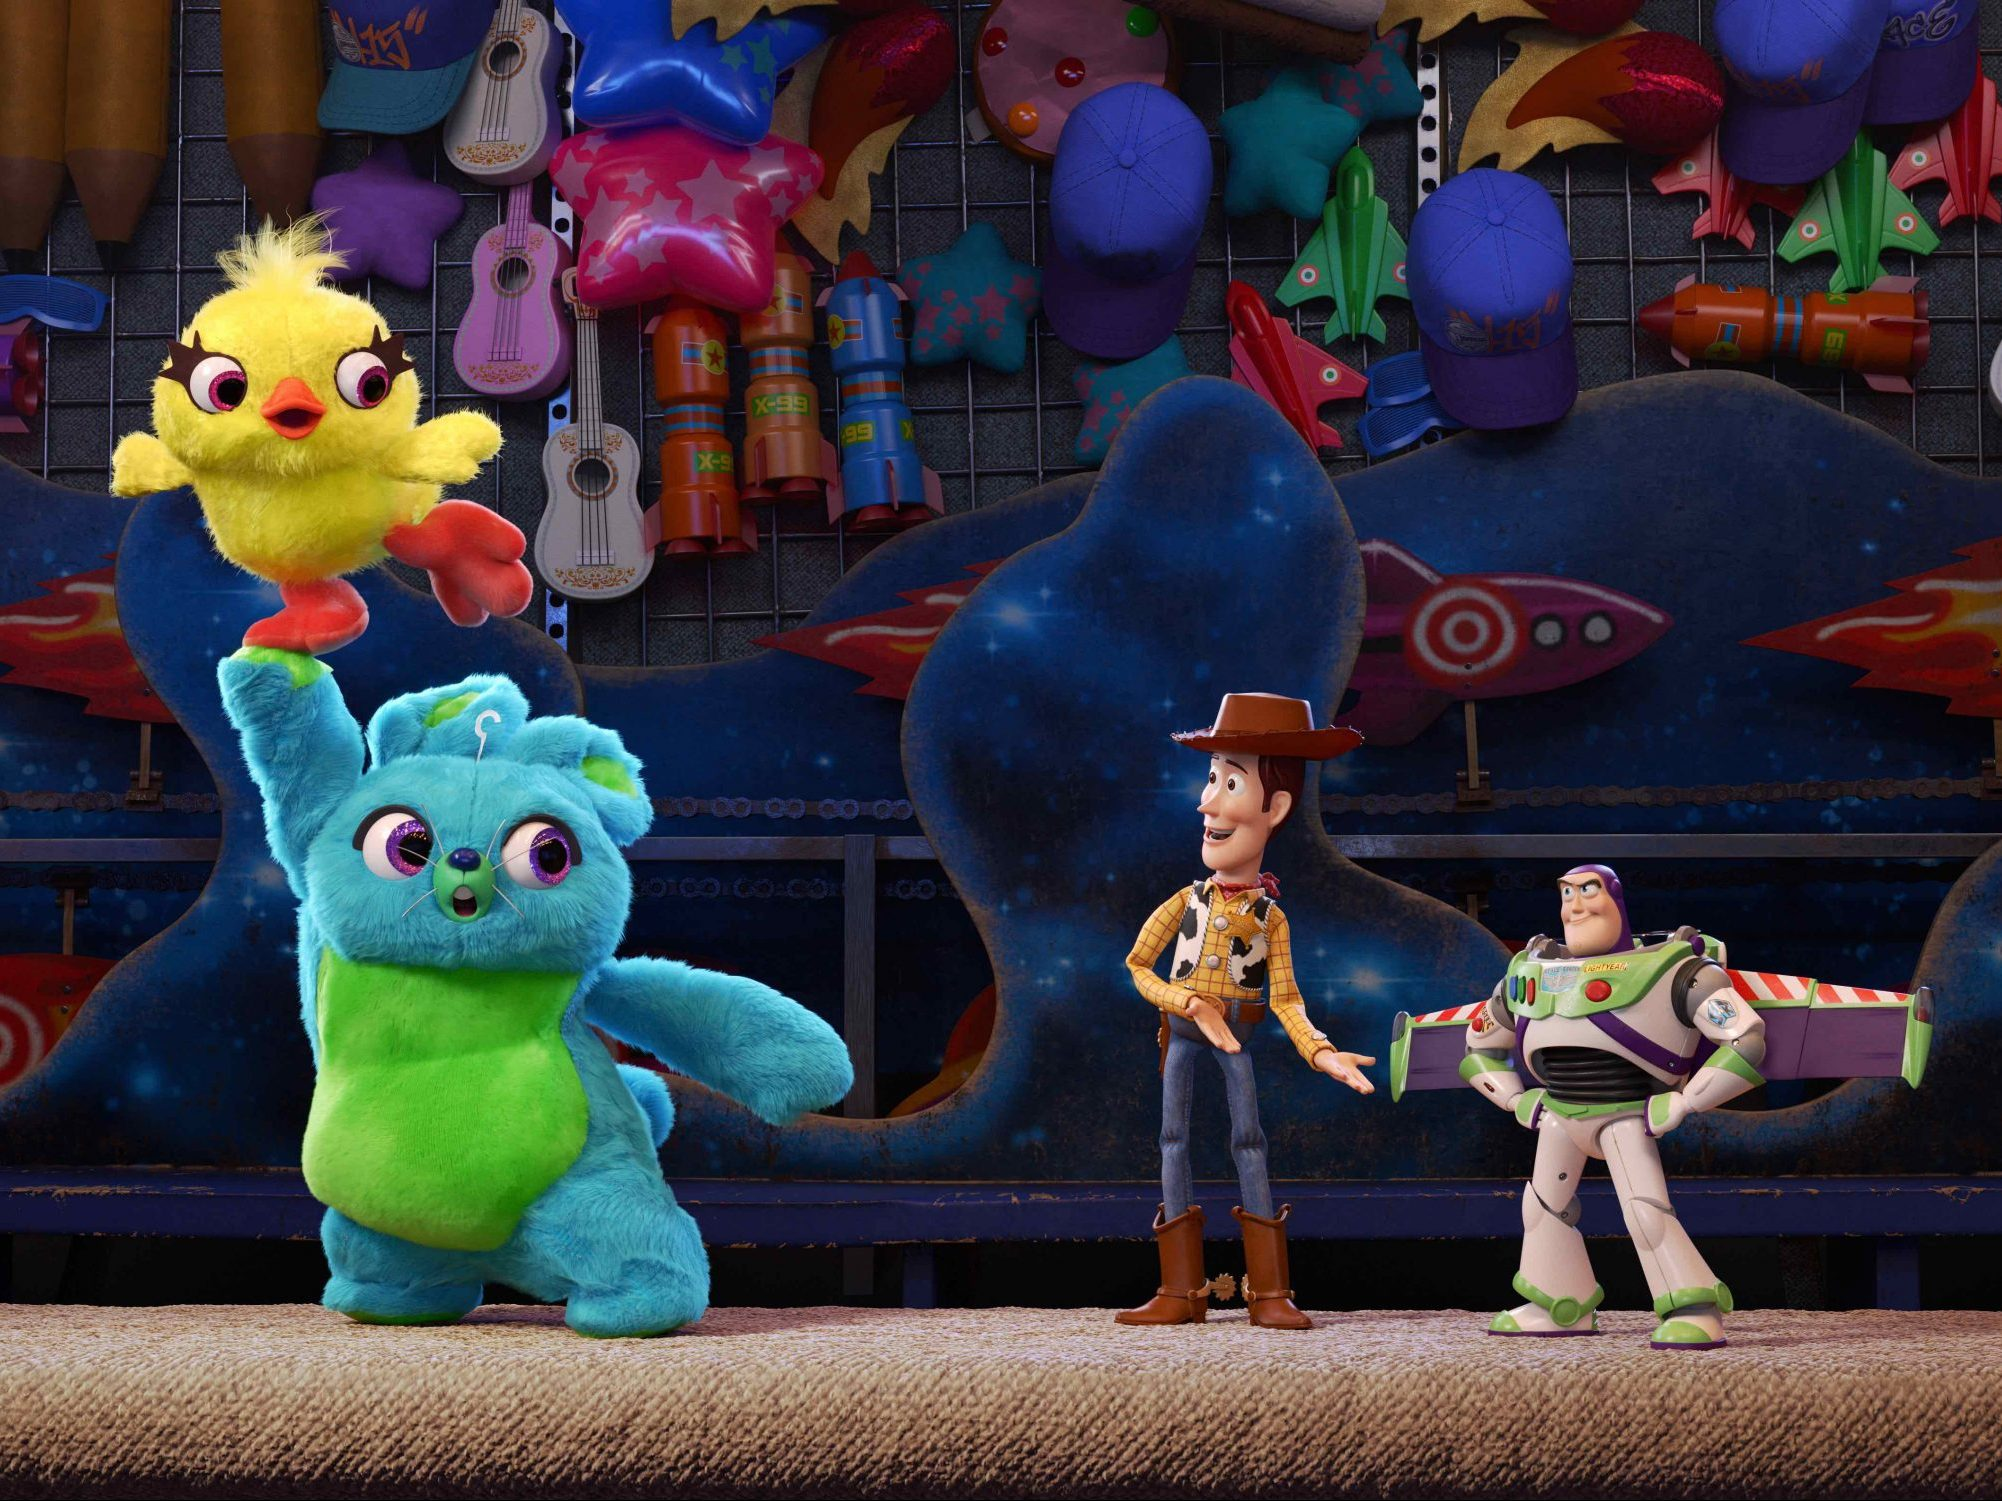 Brace for nostalgia, the Toy Story 4 trailer is here